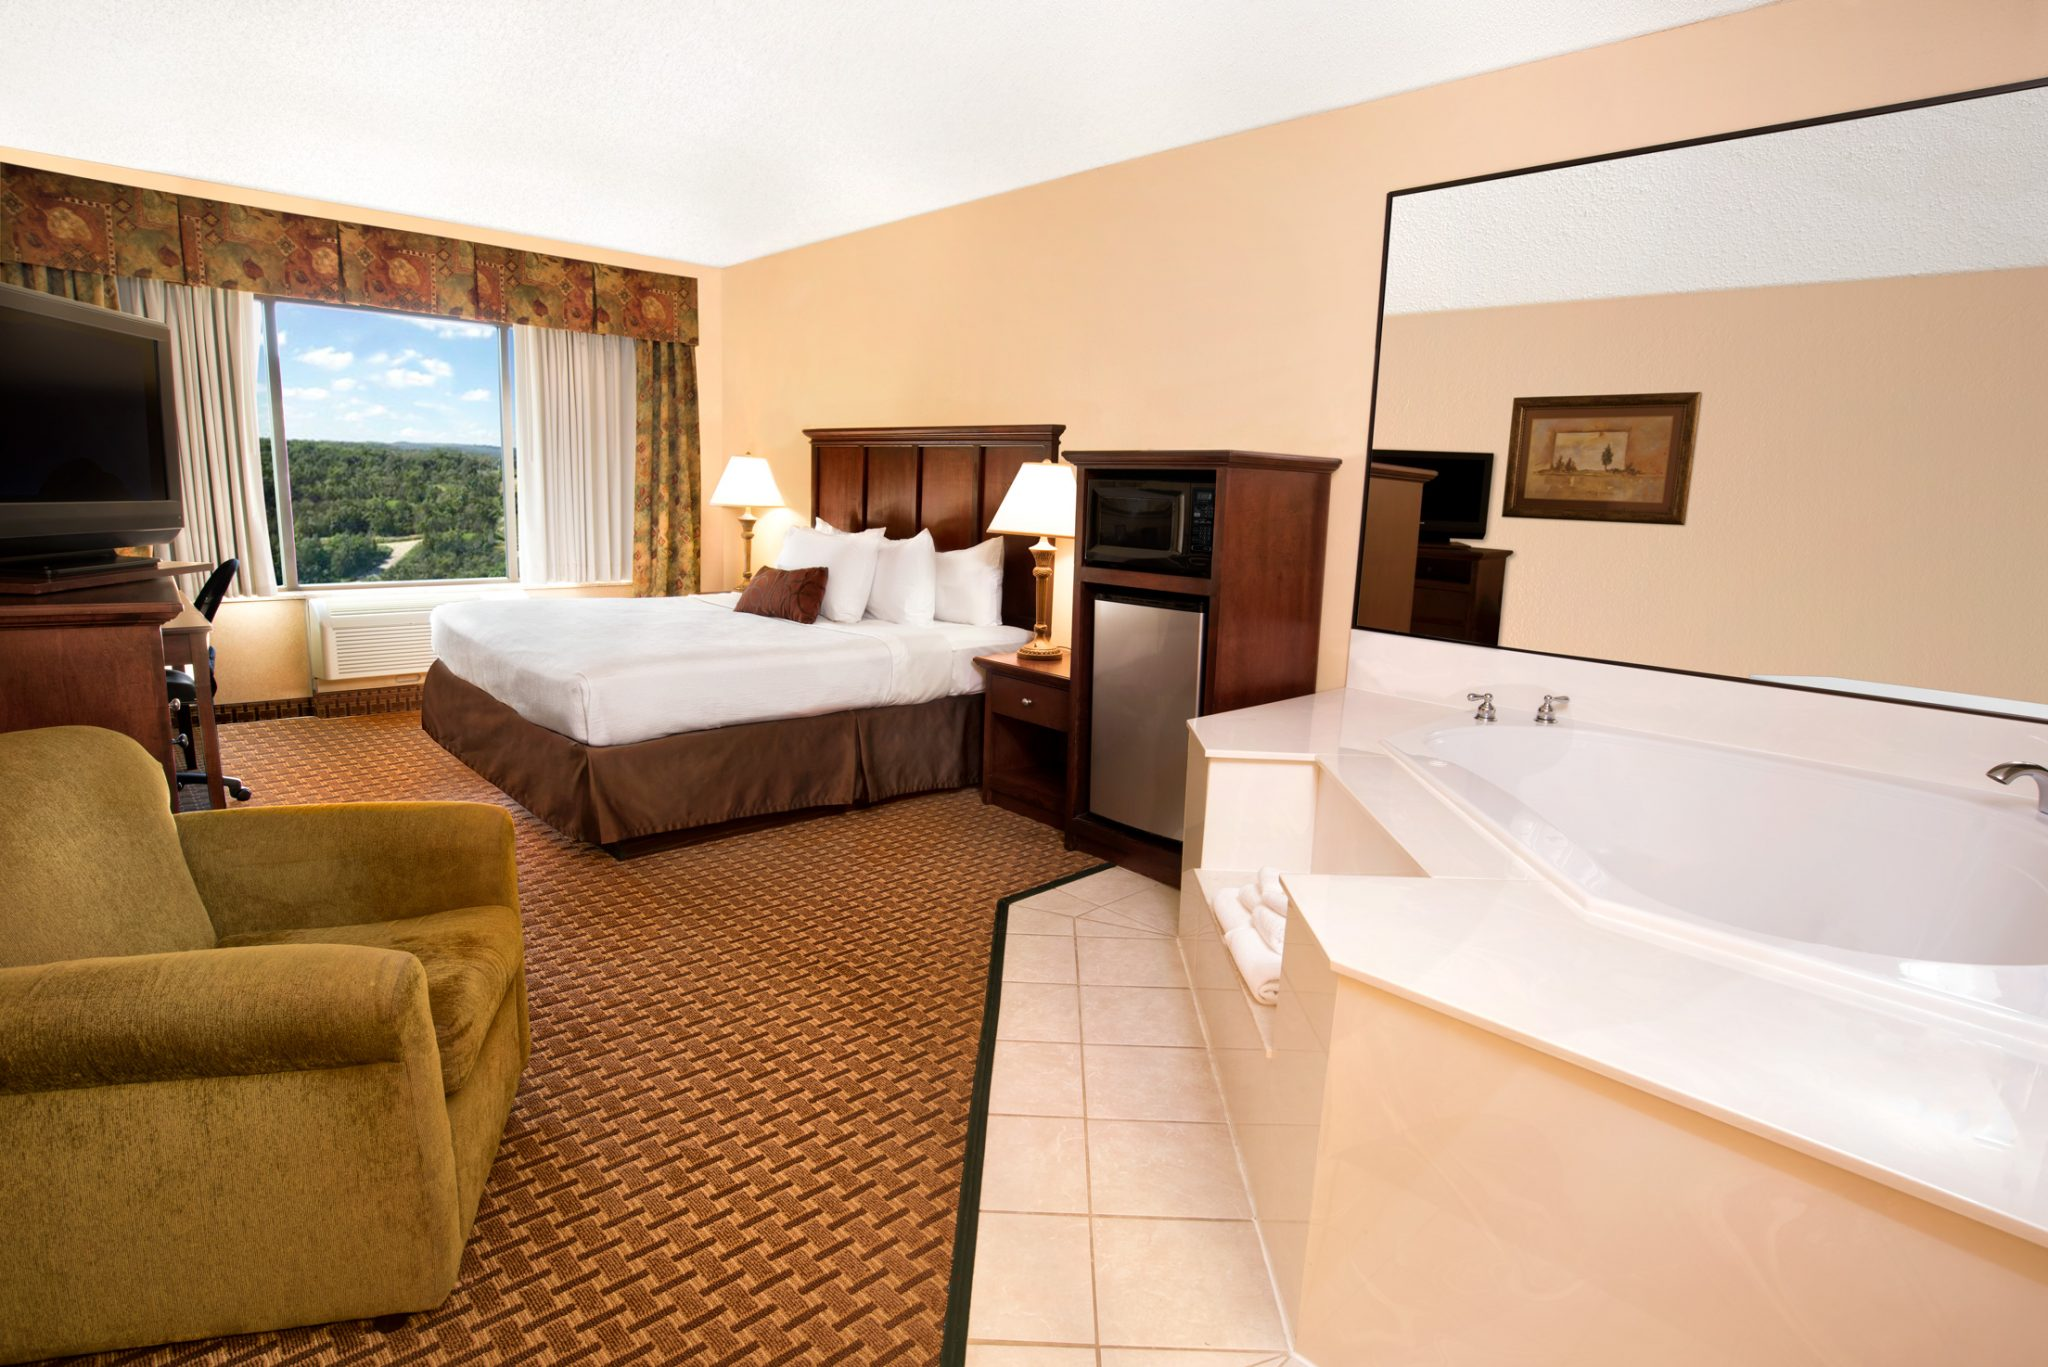 Honeymoon Suite A Deluxe Two Room Perfect For Couples Or Traveling Executives Visiting Branson Missouri The Bedroom Is Furnished With King Size